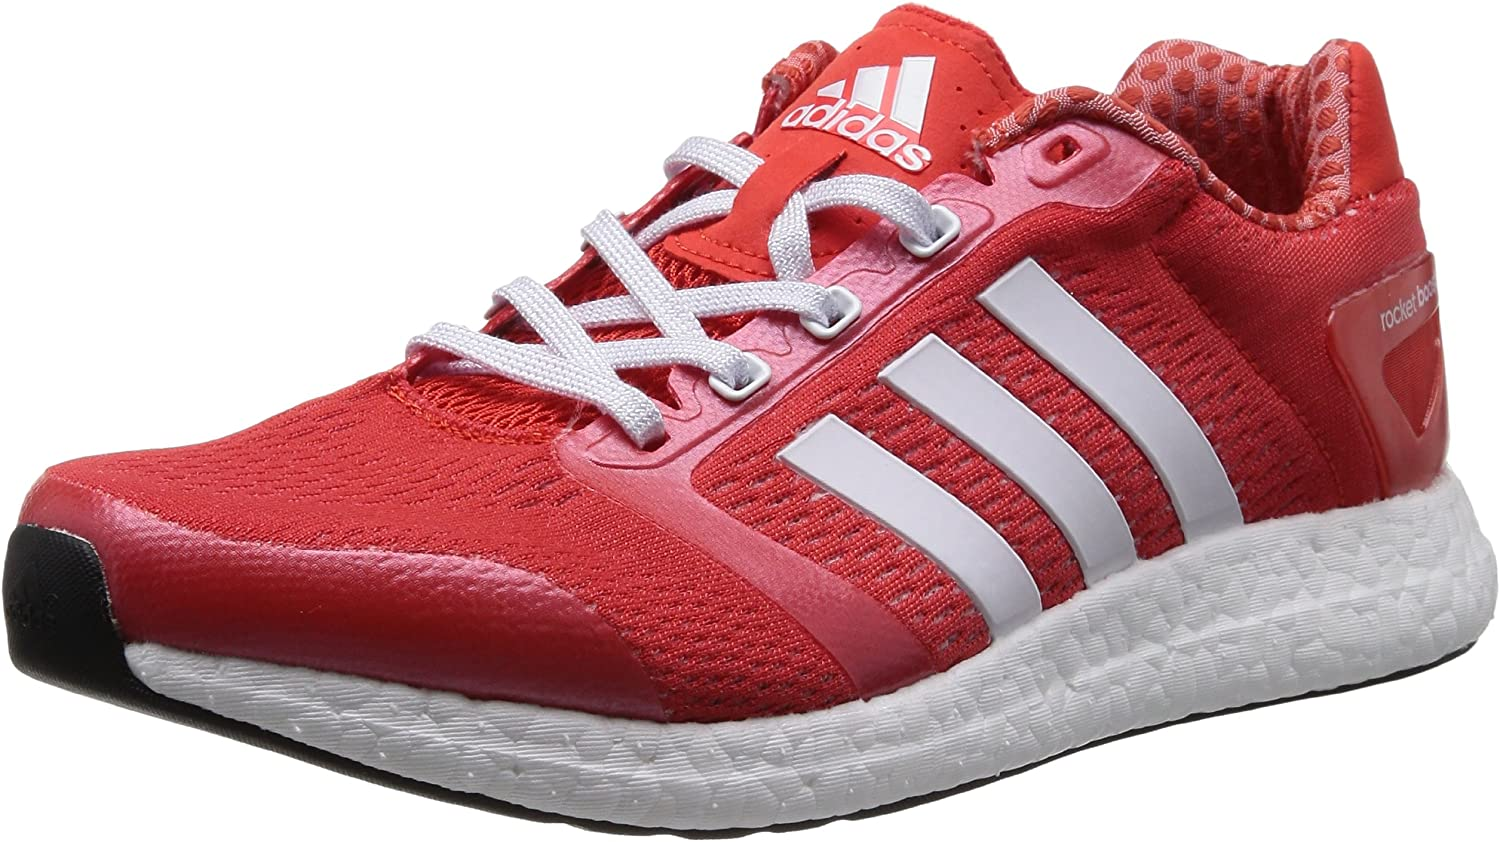 Adidas CC rocket boost M mens running trainers sneakers